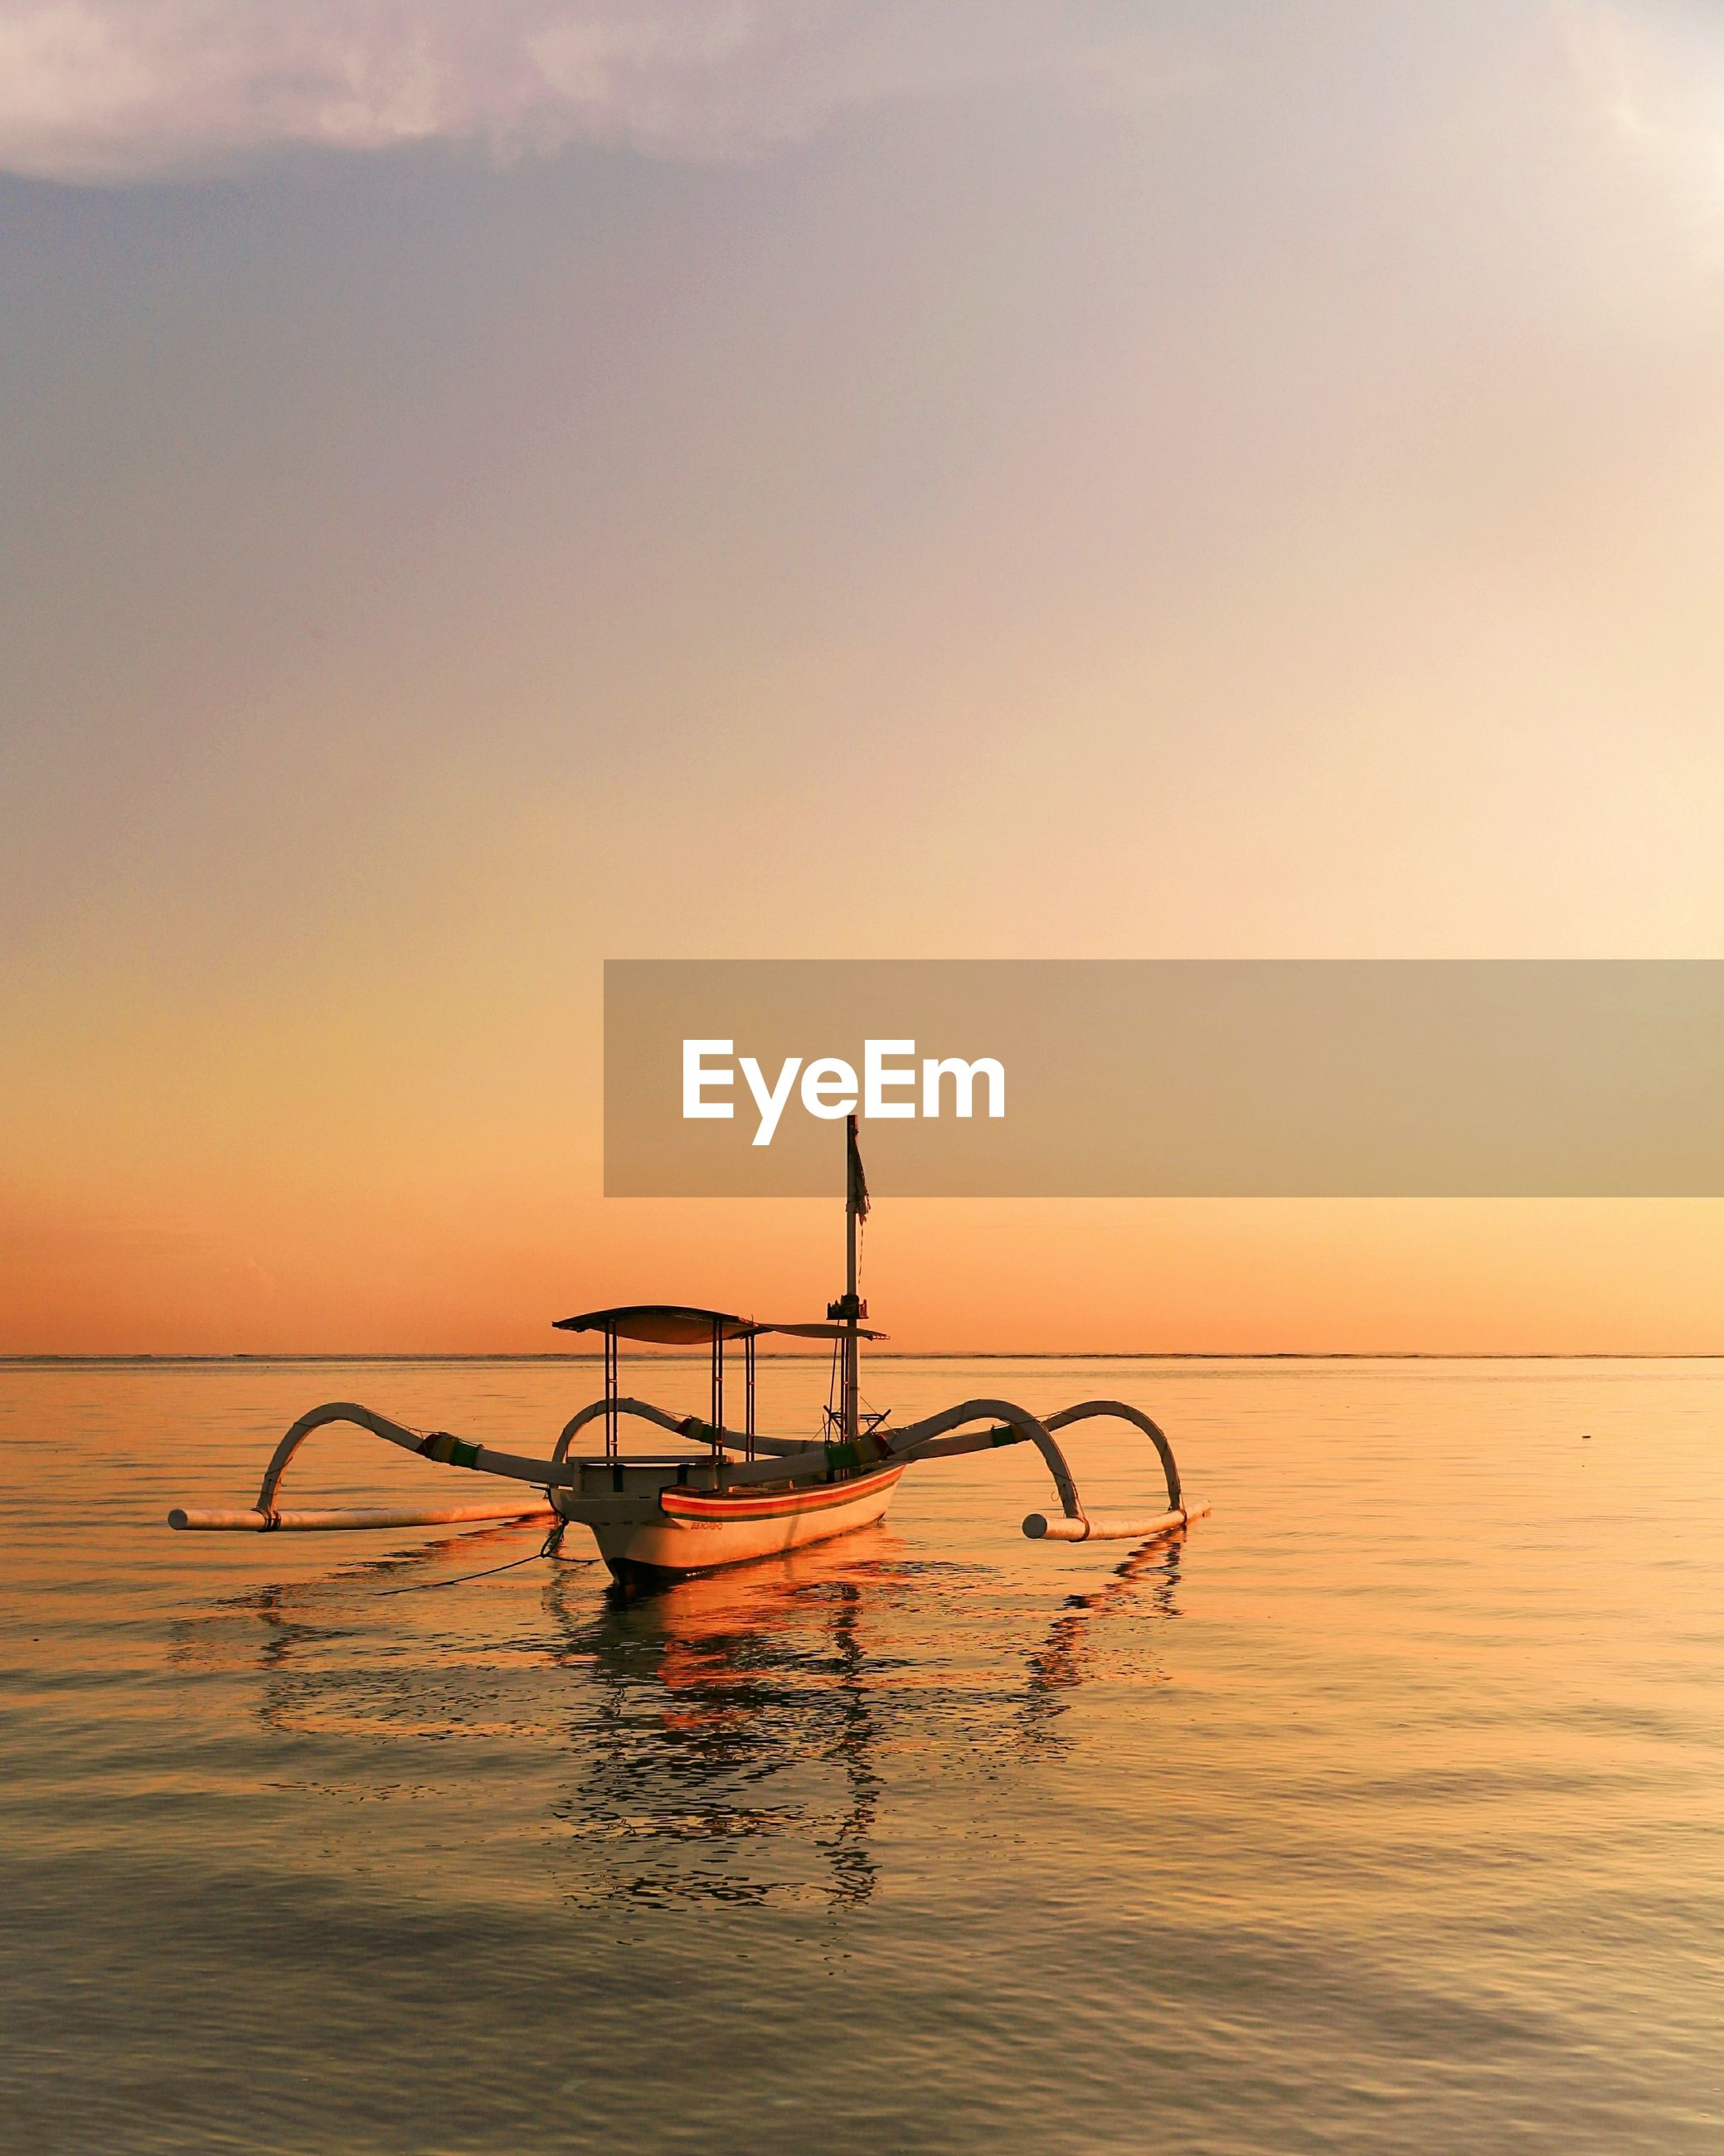 SILHOUETTE BOAT AGAINST SEA DURING SUNSET